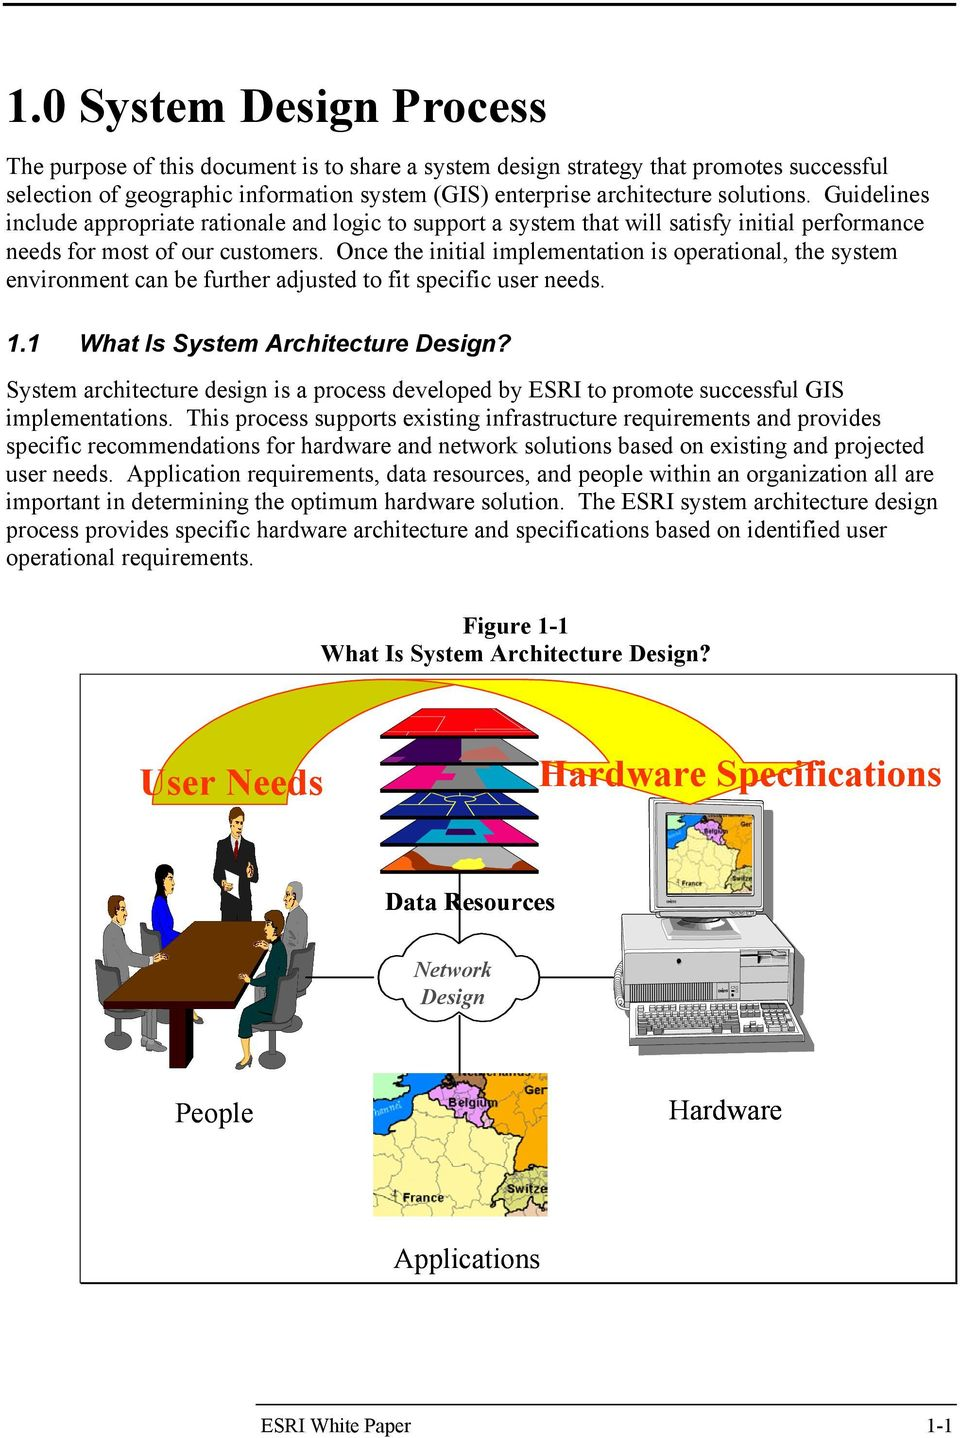 Once the initial implementation is operational, the system environment can be further adjusted to fit specific user needs. 1.1 What Is System Architecture Design?